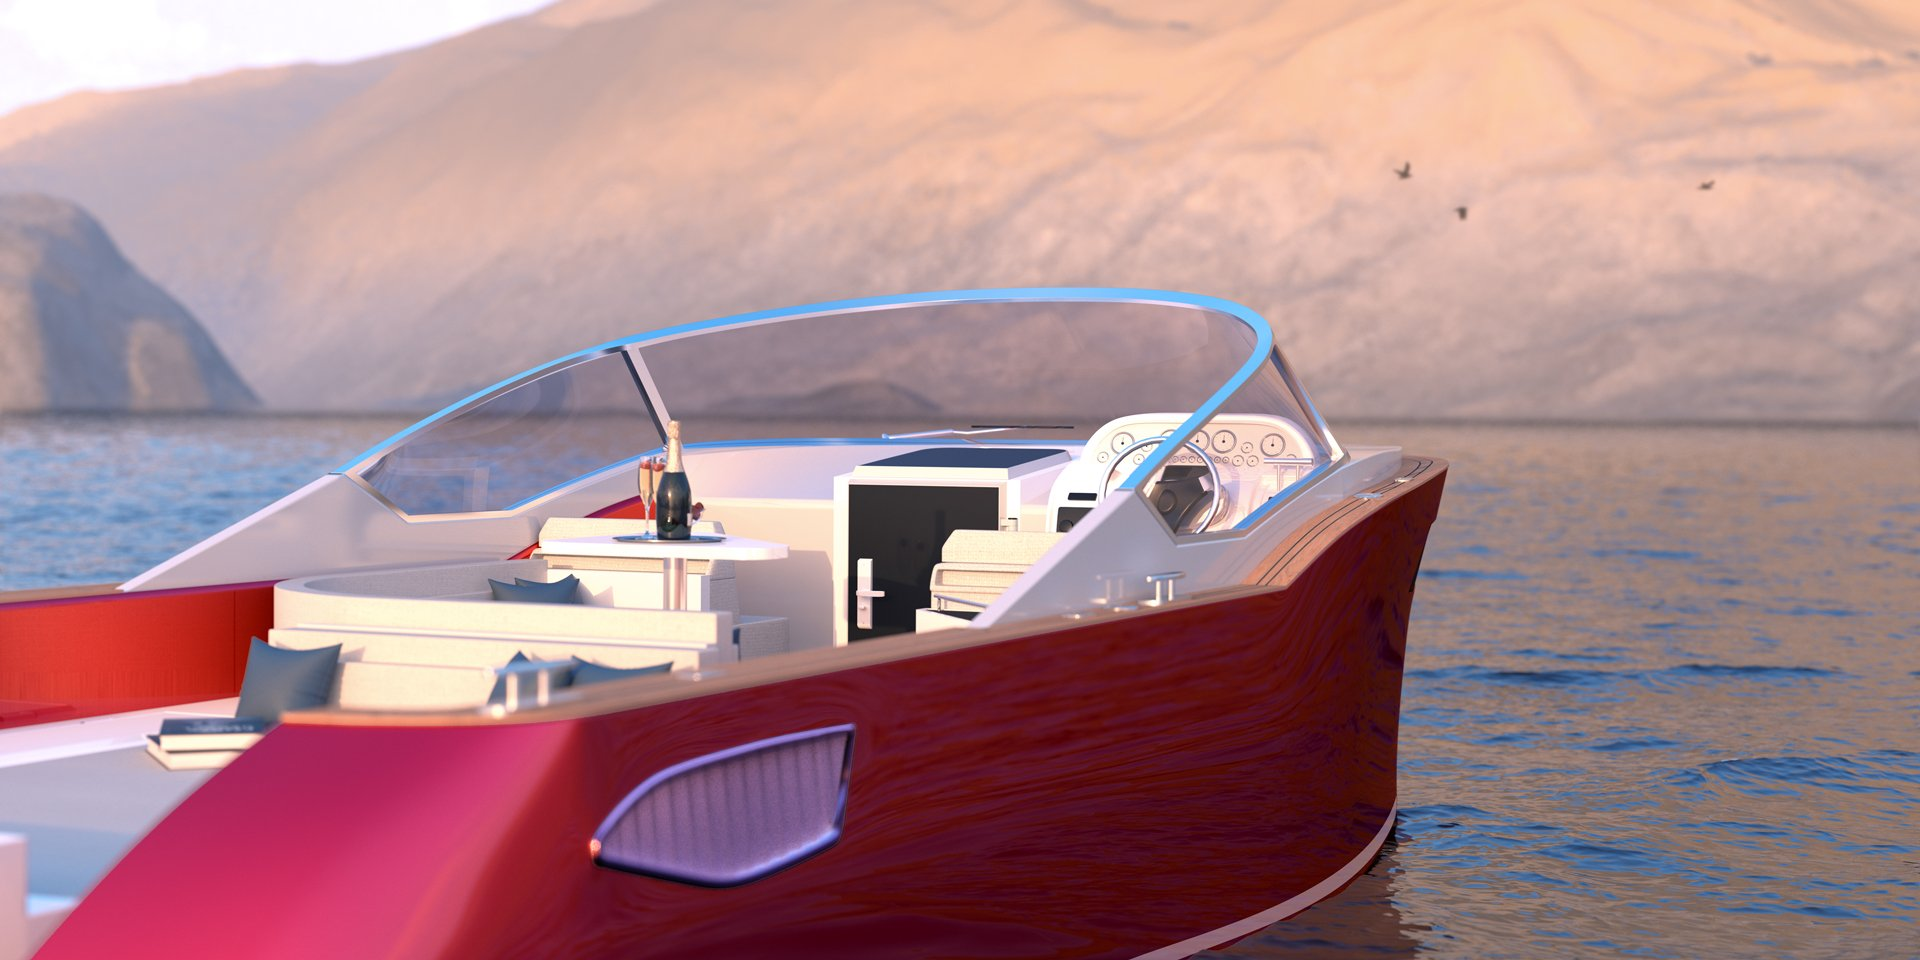 3d-configurator-online-Cayos-Render-boat-side-view-close